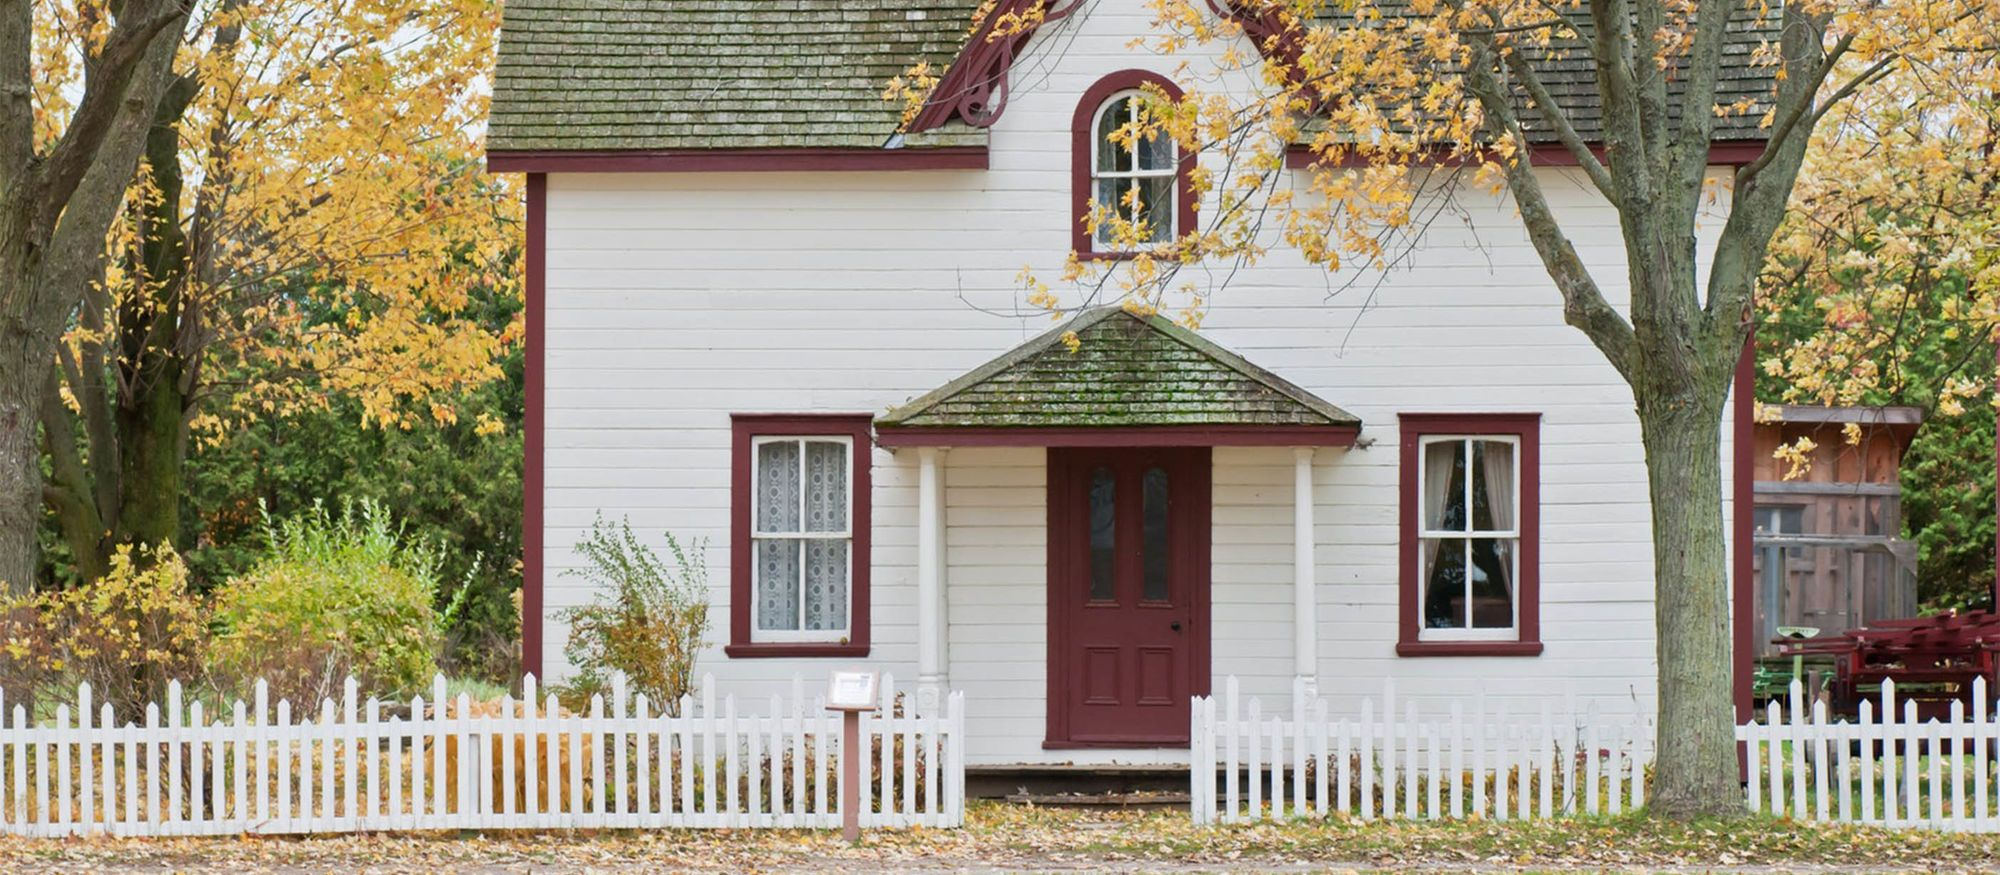 8 Tips On Deciding When To Refinance Your Home Loan